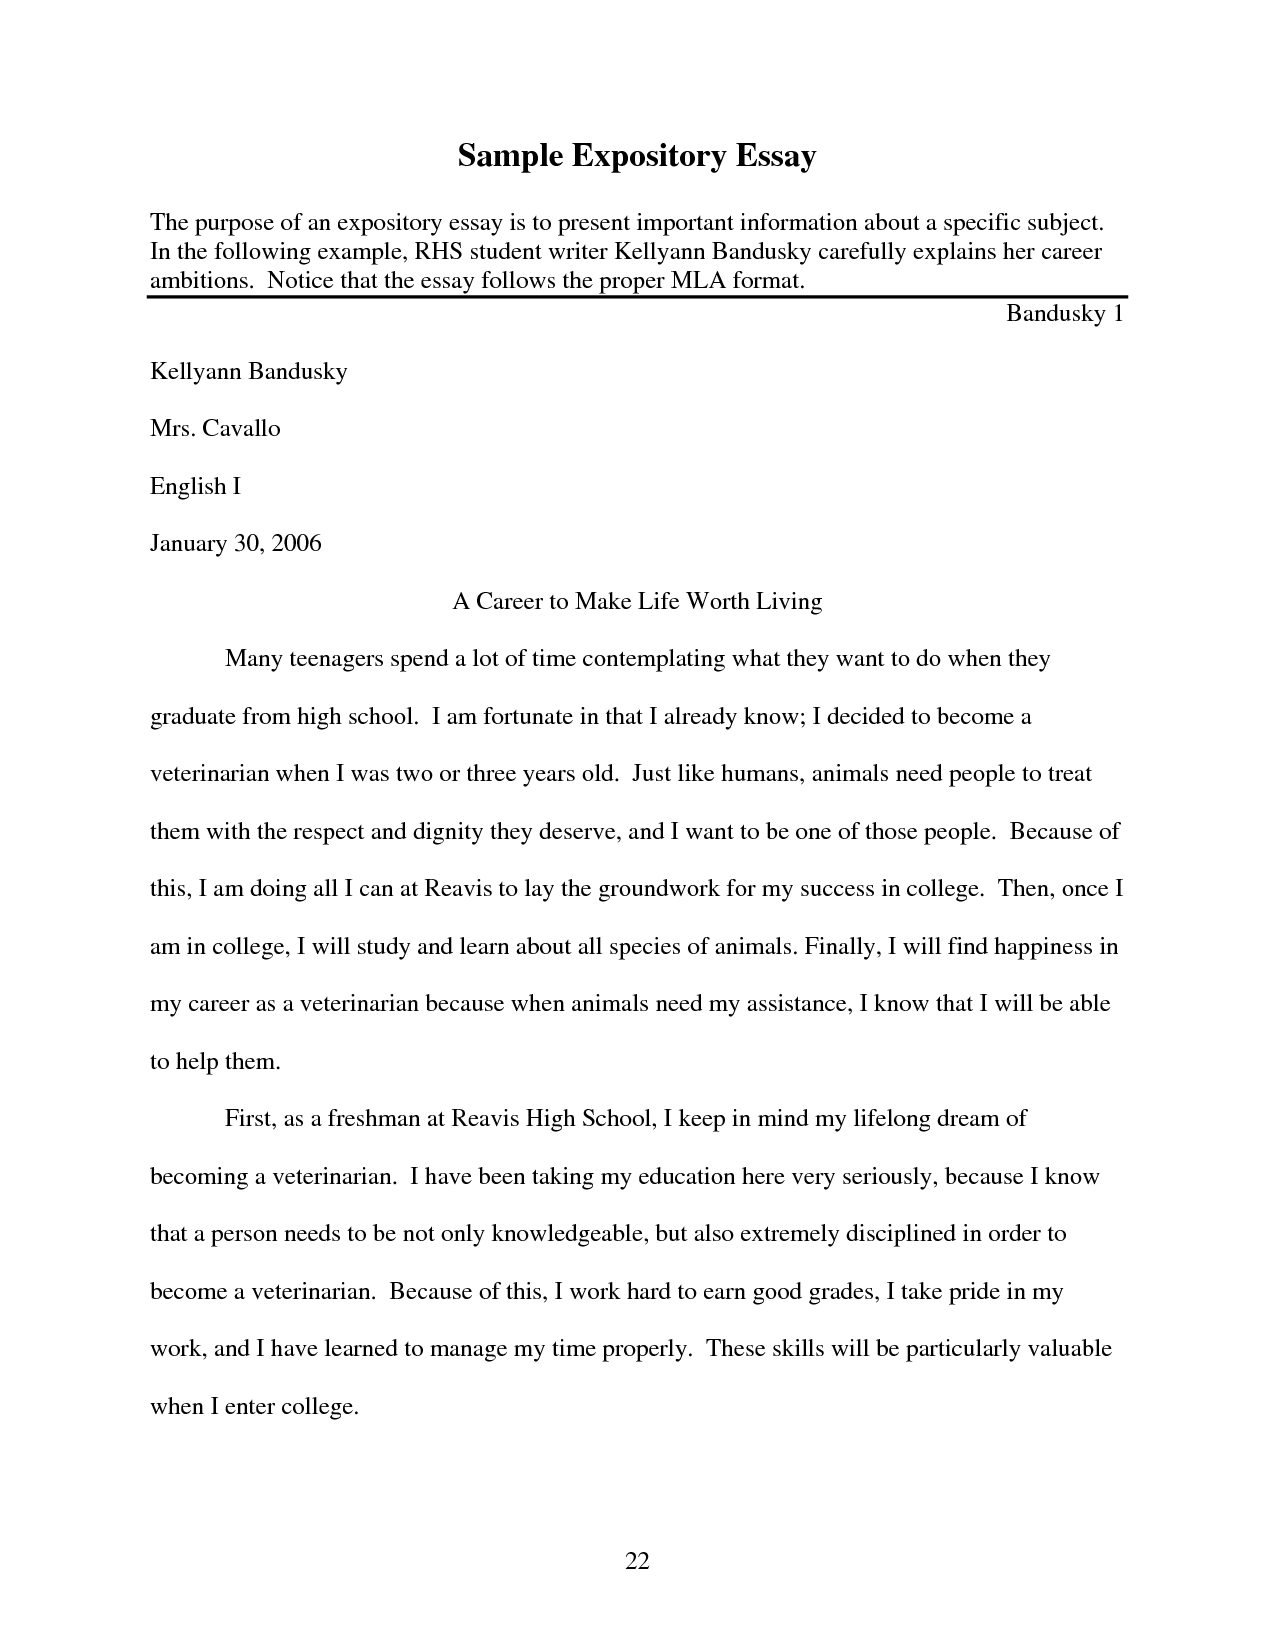 010 Example Of Expository Writing Essay Good Cover Letter Samples Introduction Feria Educacional How To Write An Singular Explanatory Middle School Full